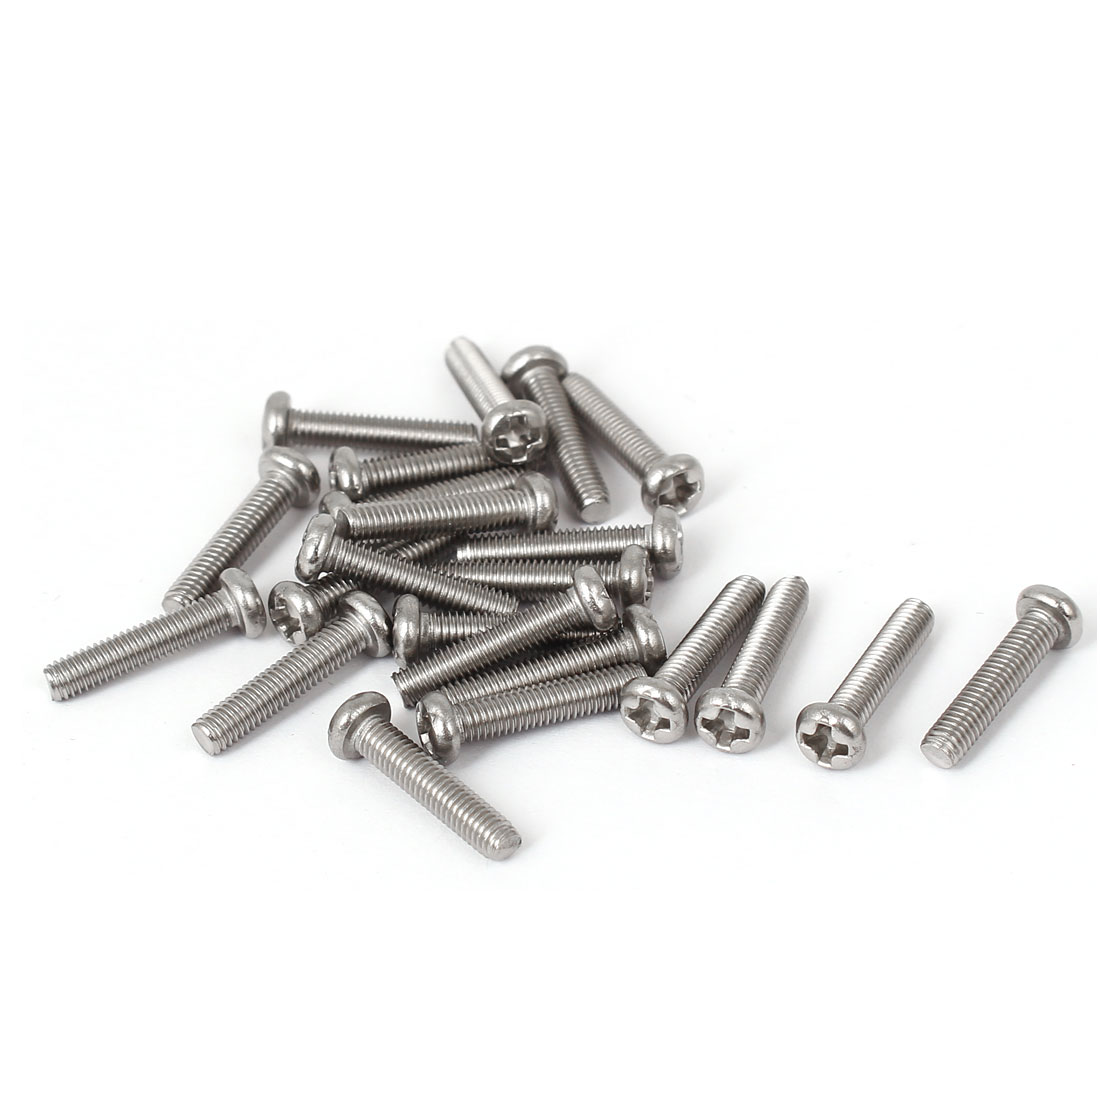 M3 x 14mm 304 Stainless Steel Phillips Drive Machine Bolts Pan Head Screws 23PCS